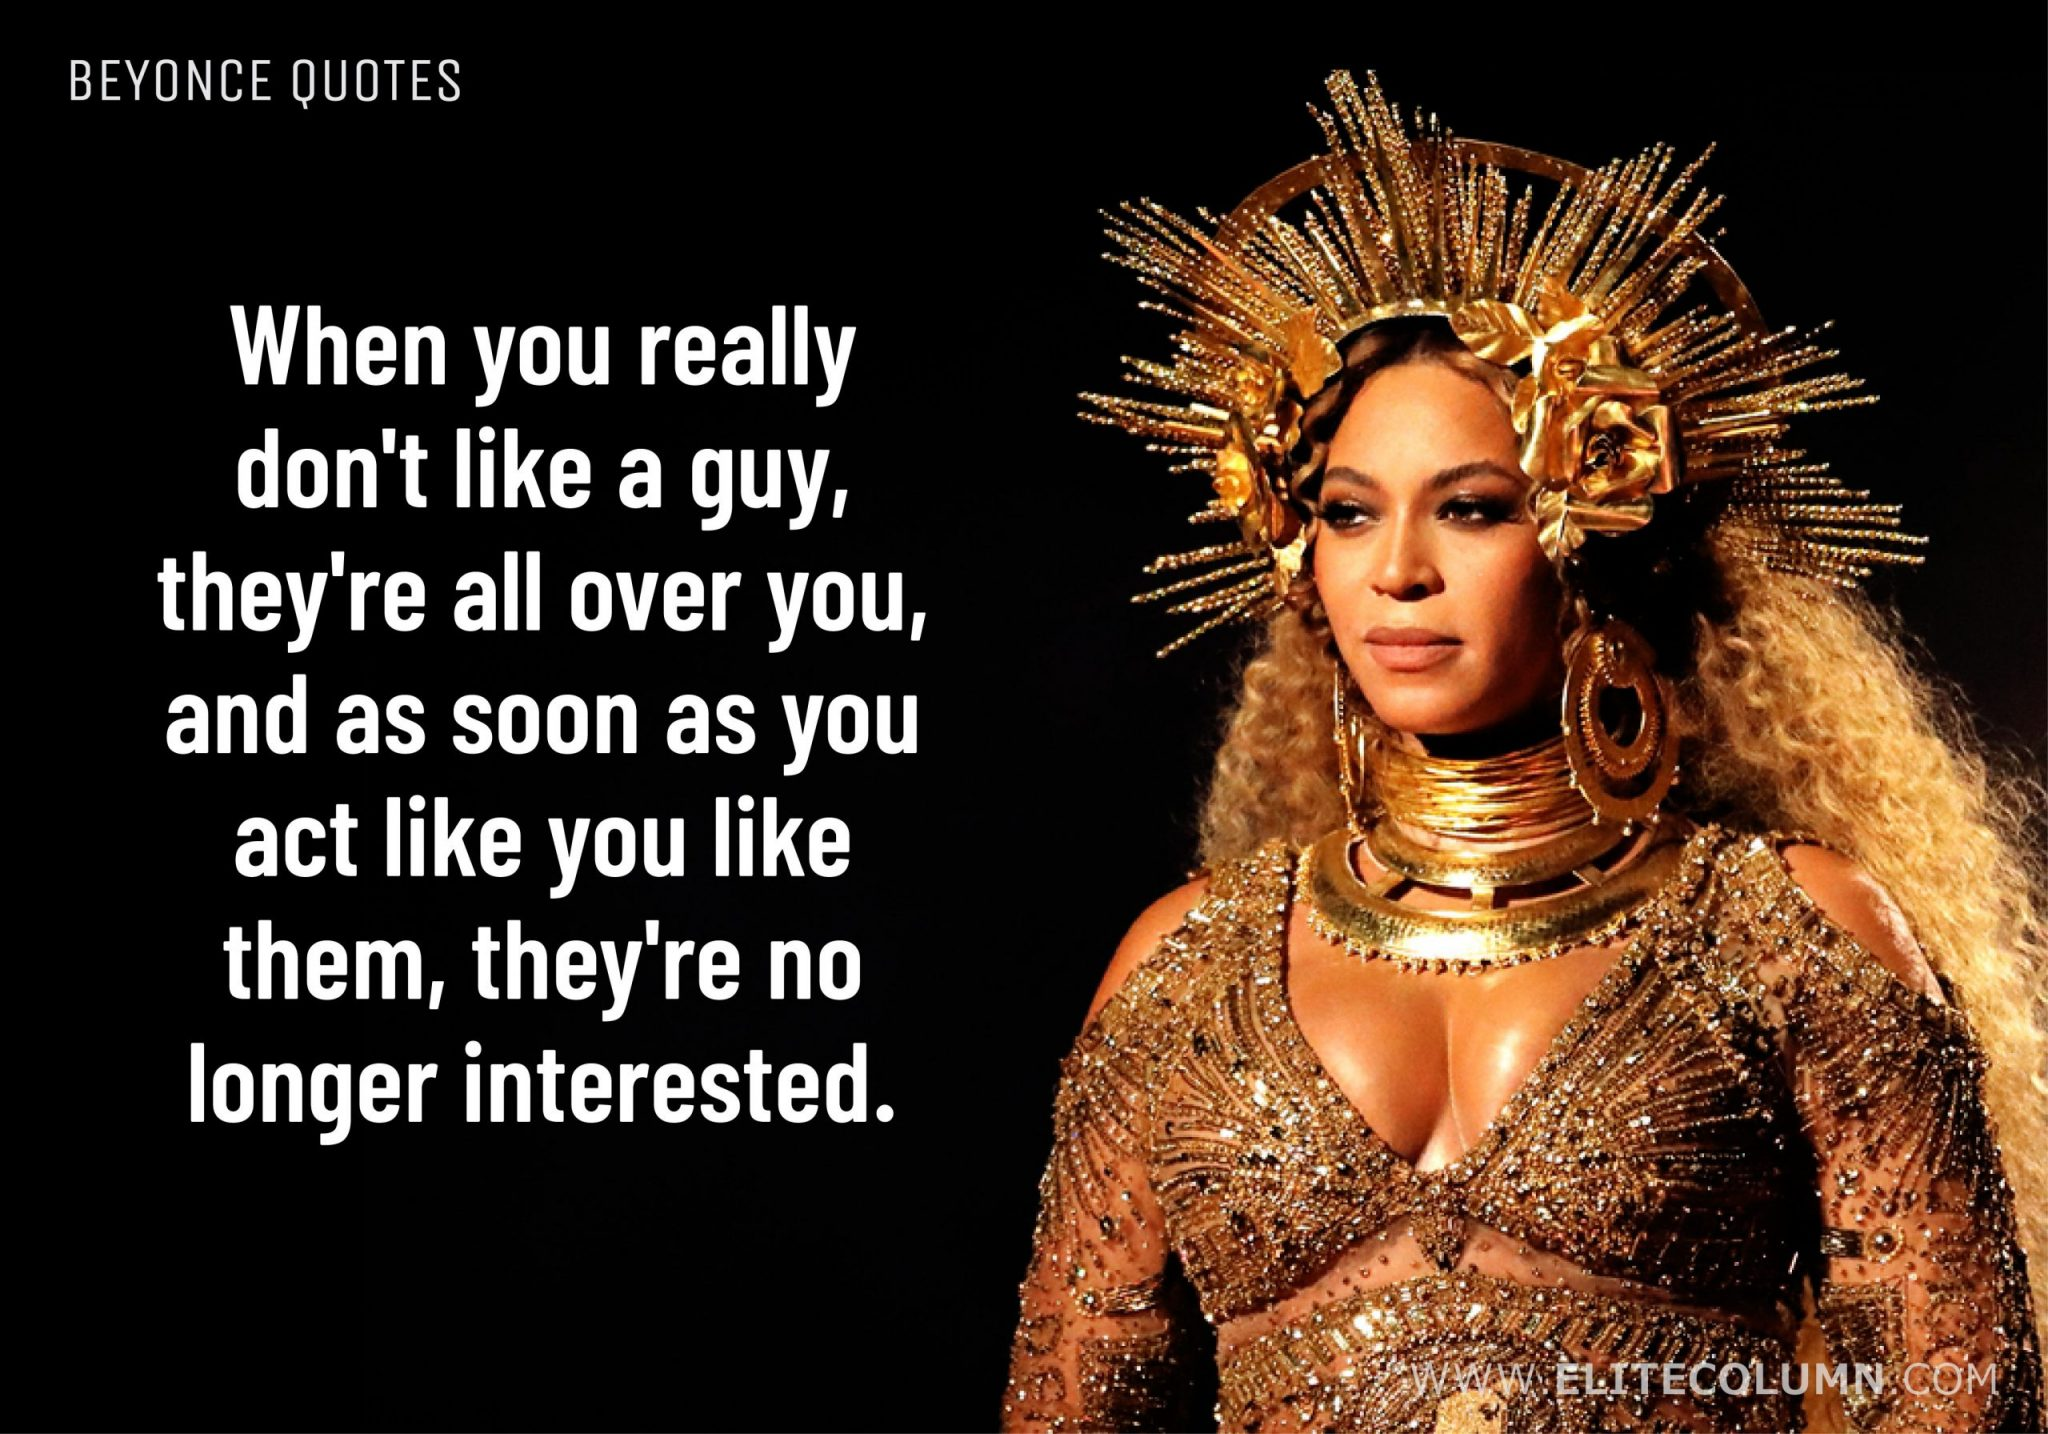 Beyonce Quotes (2)